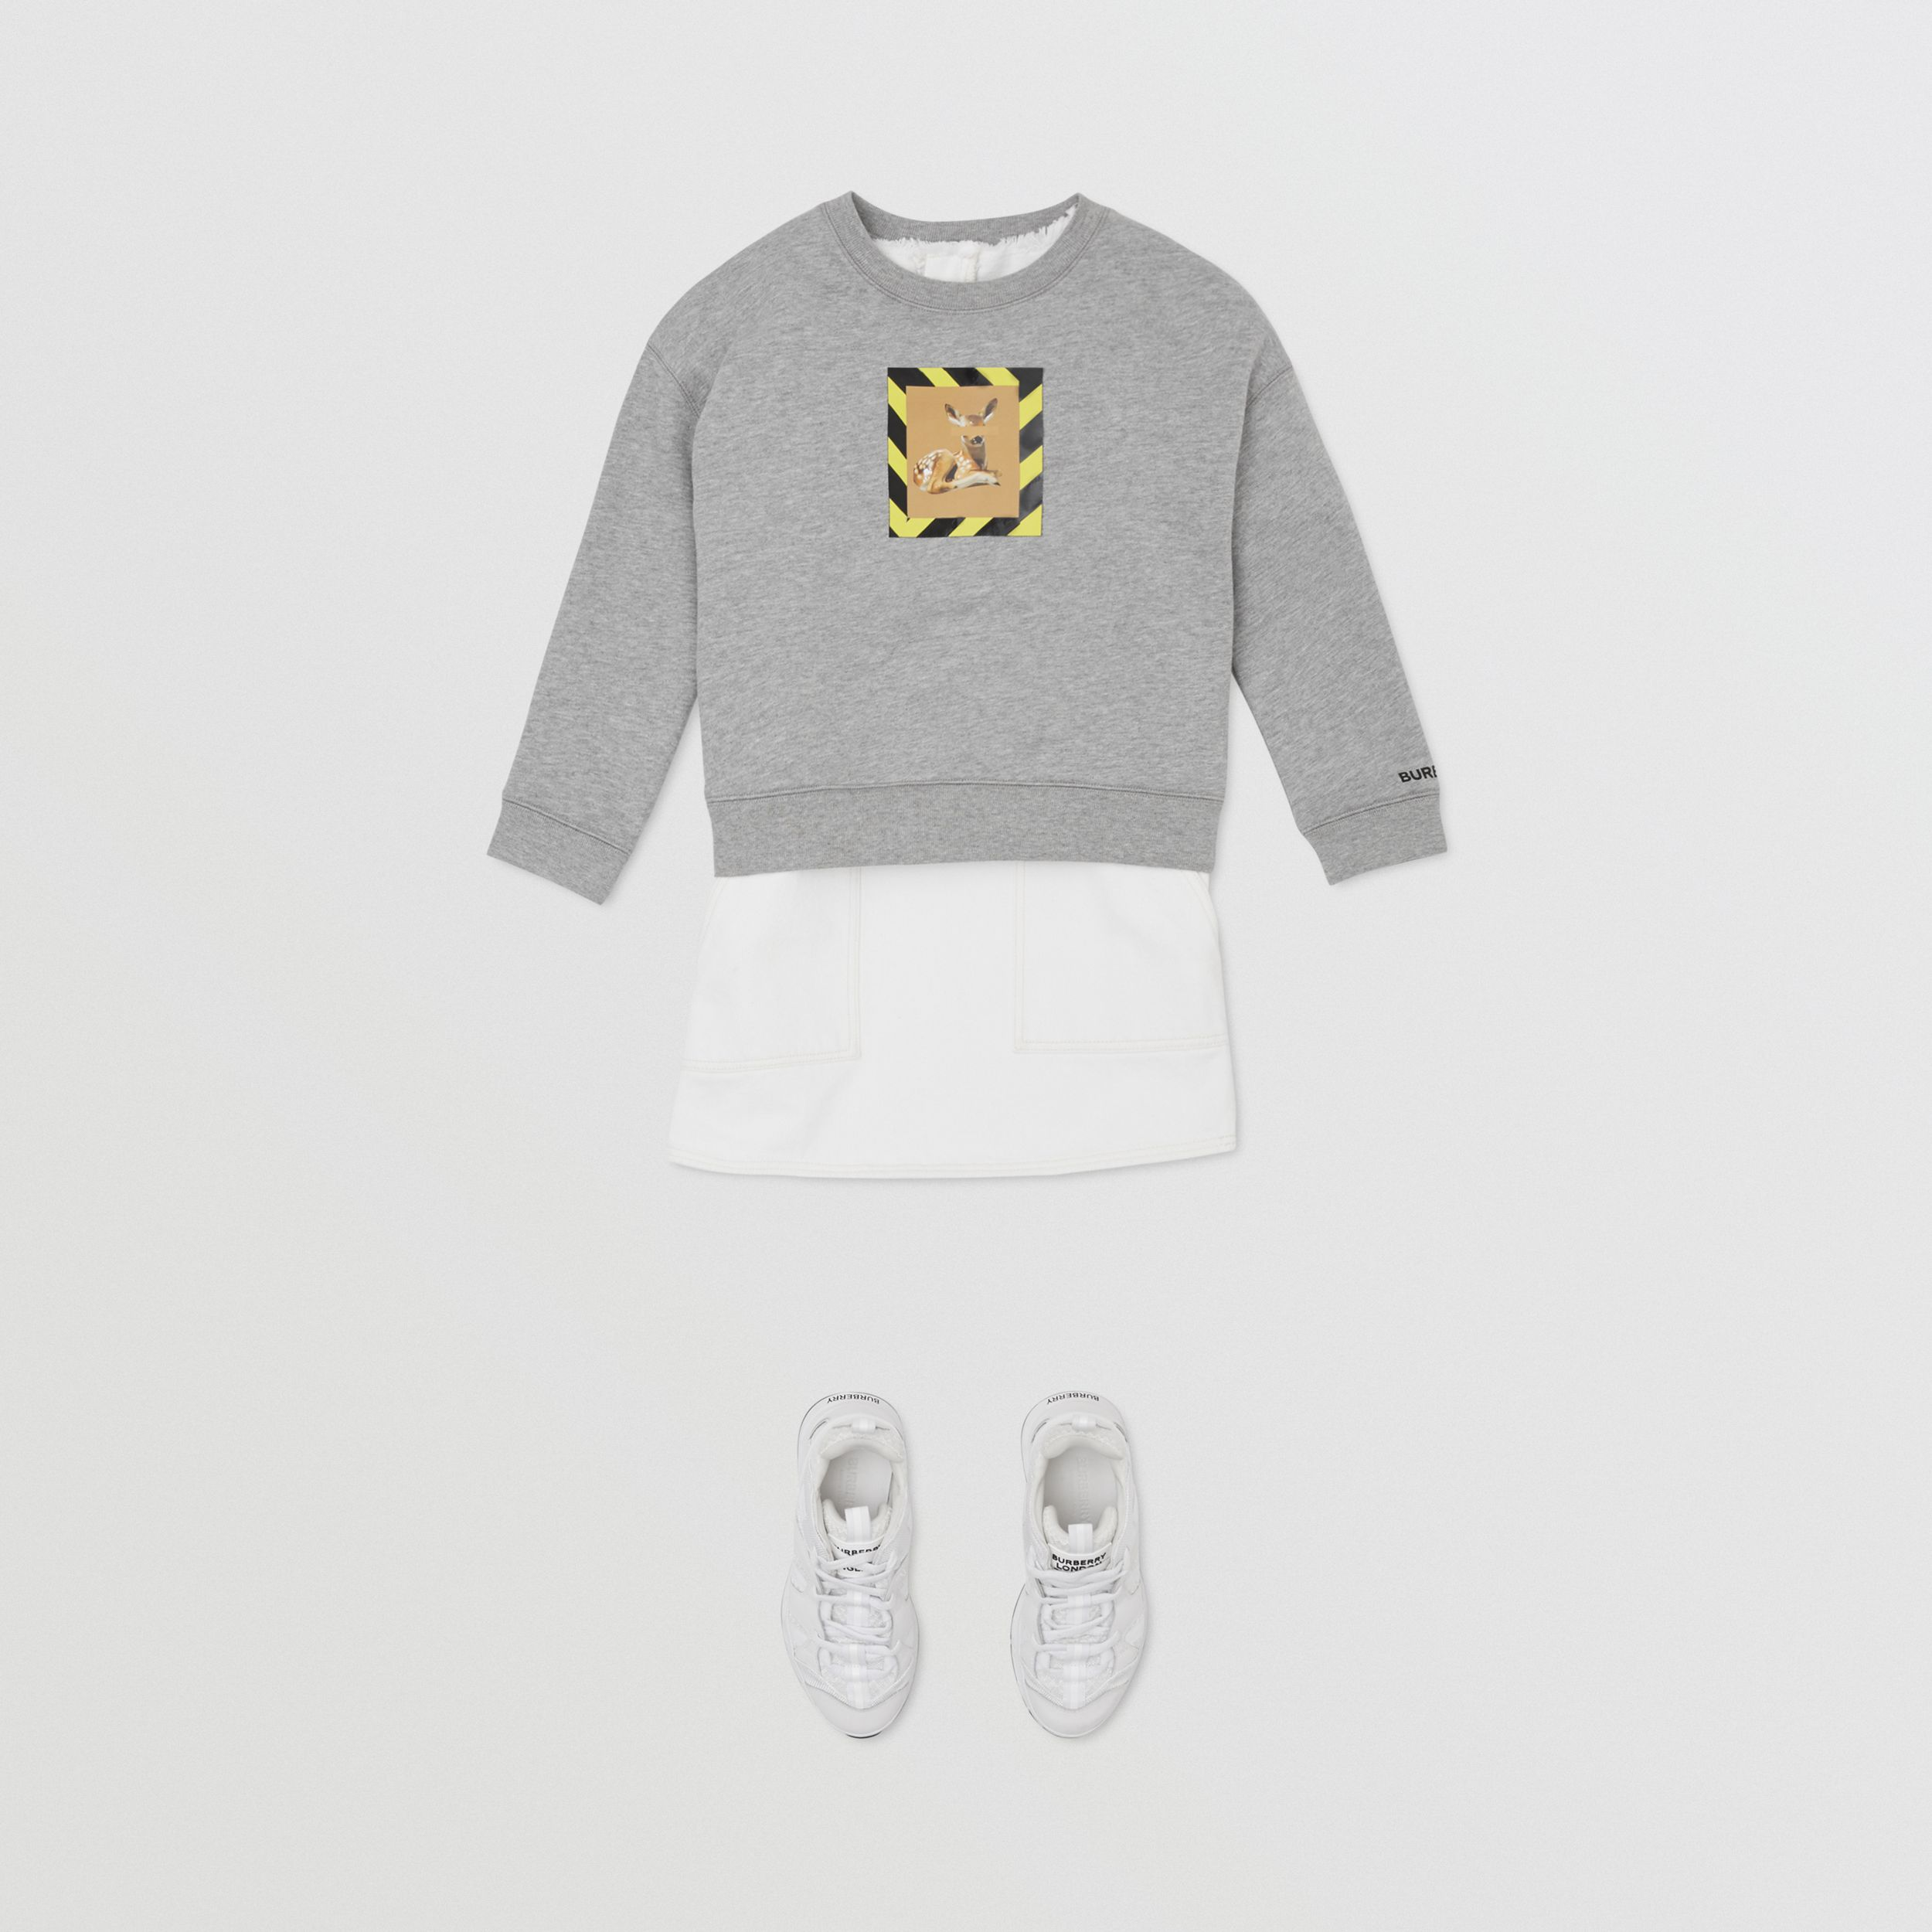 Deer Print Cotton Sweatshirt in Grey Melange | Burberry - 4